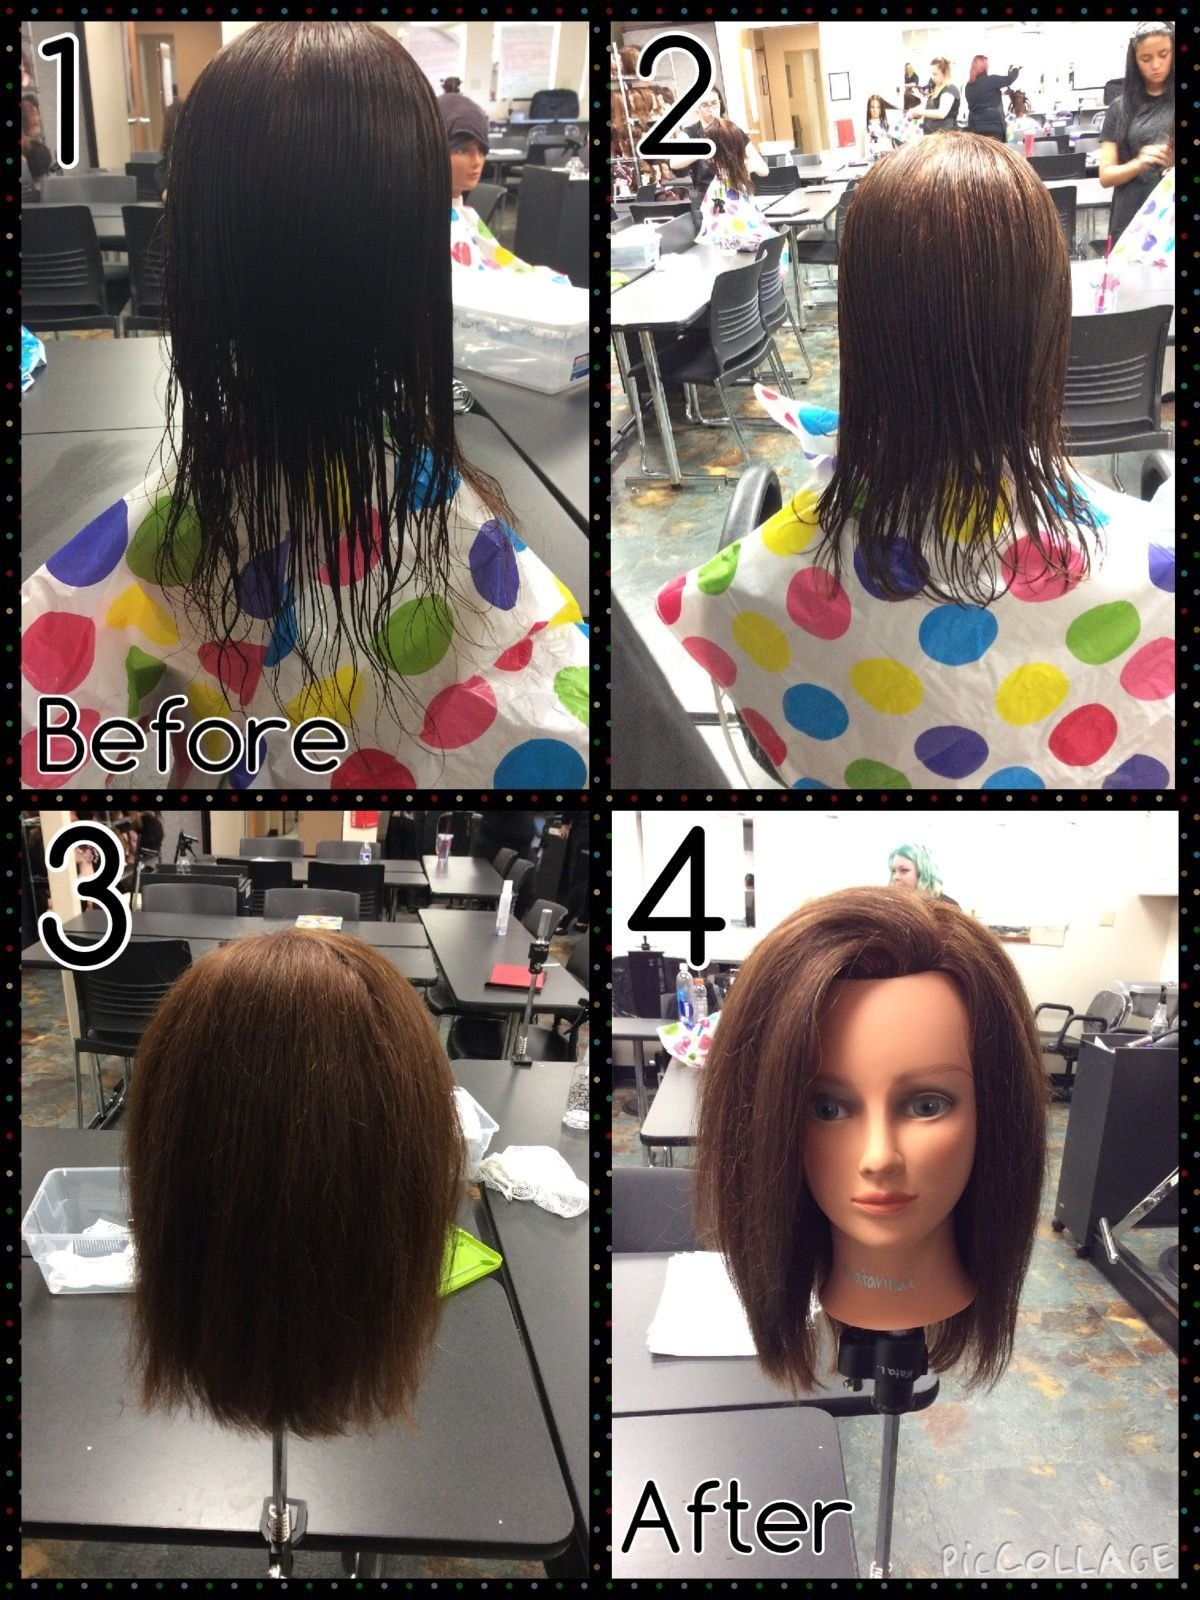 The Best 45 Degree Haircut With Bl*W Dry Styling Pictures